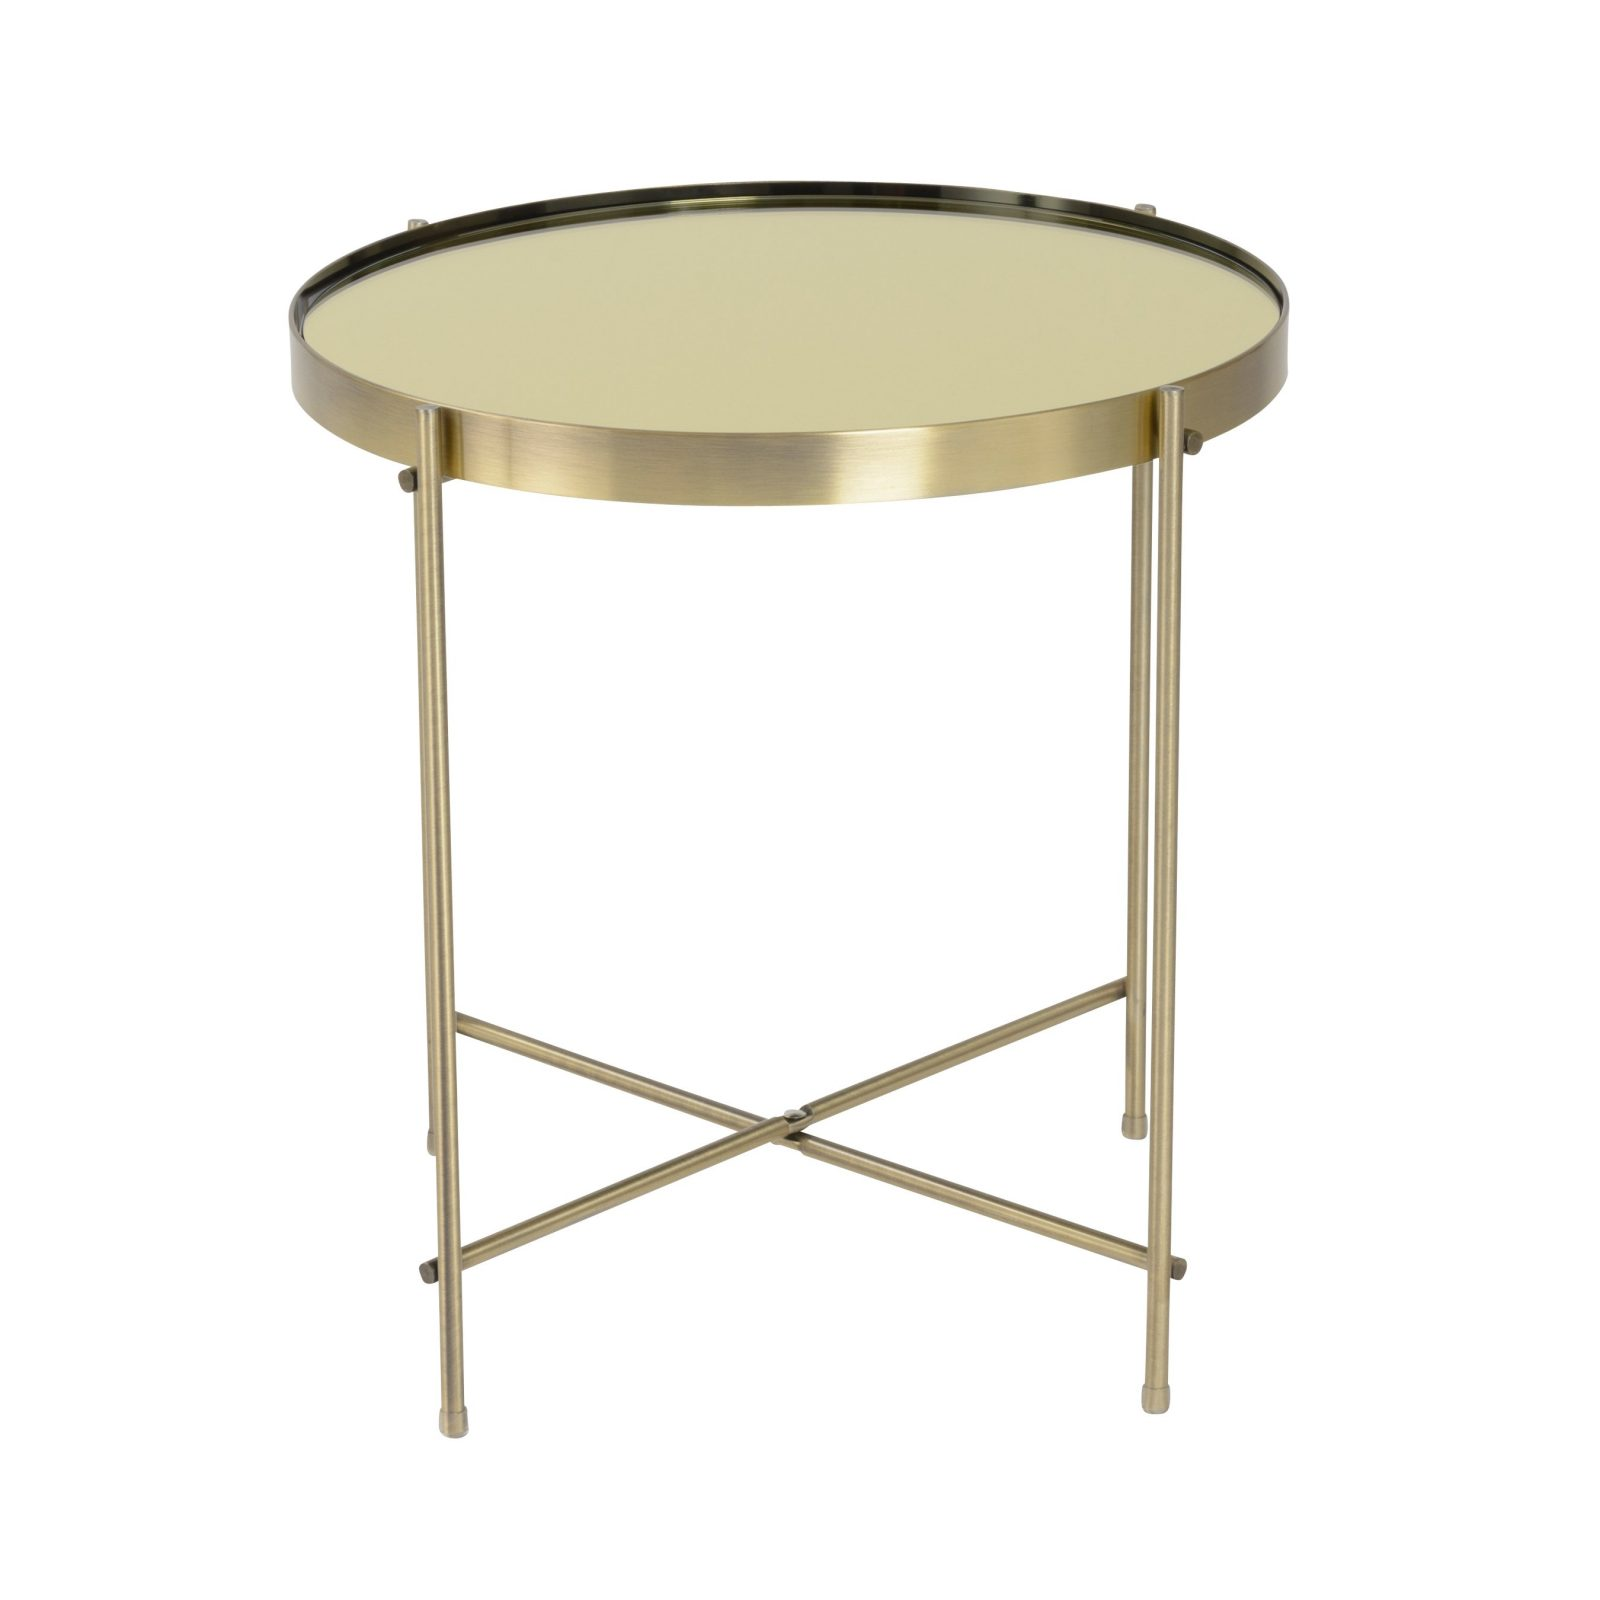 albeo cast brass coffee table contemporary transitional mid west euro style trinity round brushed side elm tinted mirror with base legs makeover marble top glass target tray